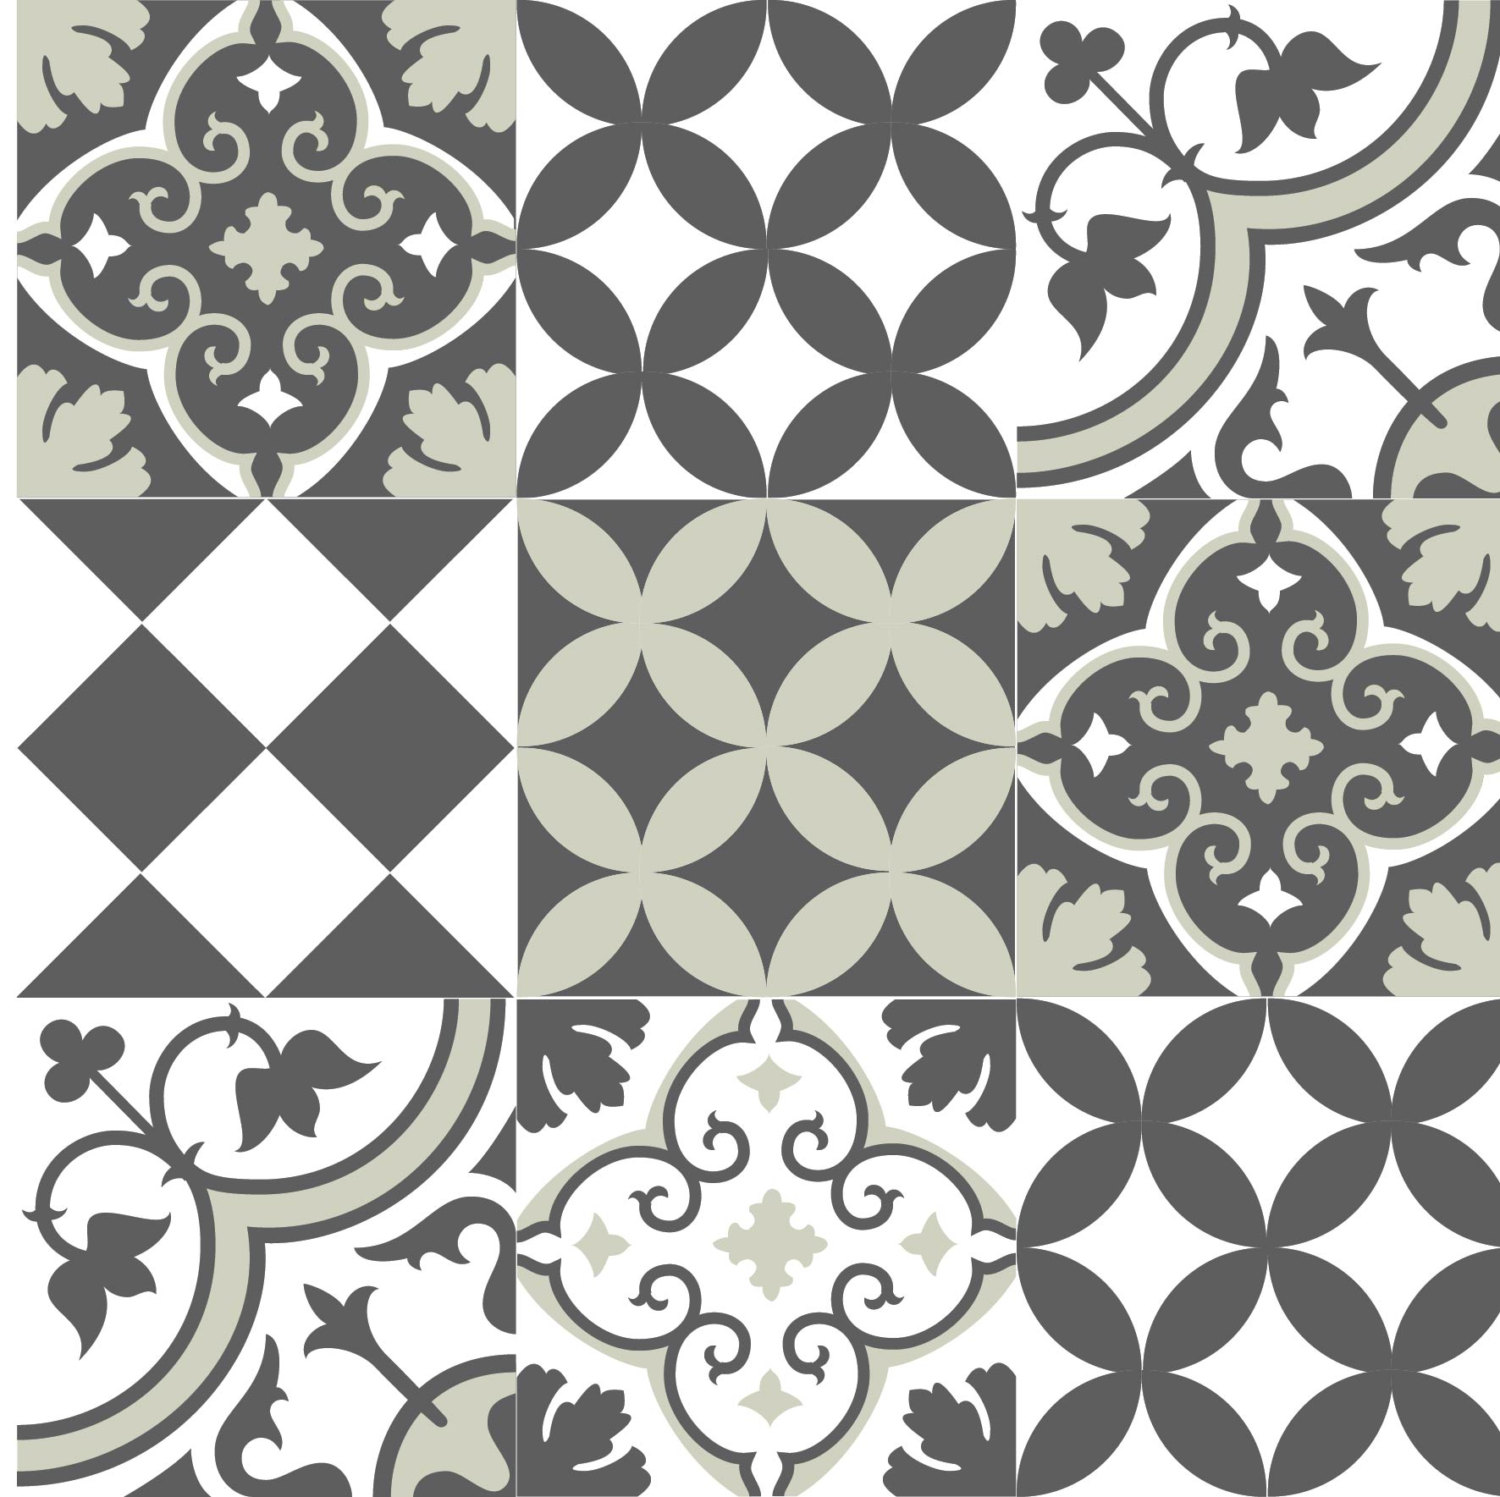 mix-tile-decals-kitchenbathroom-tiles-vinyl-floor-tiles-free-shipping-design-312-5897aec95.jpg